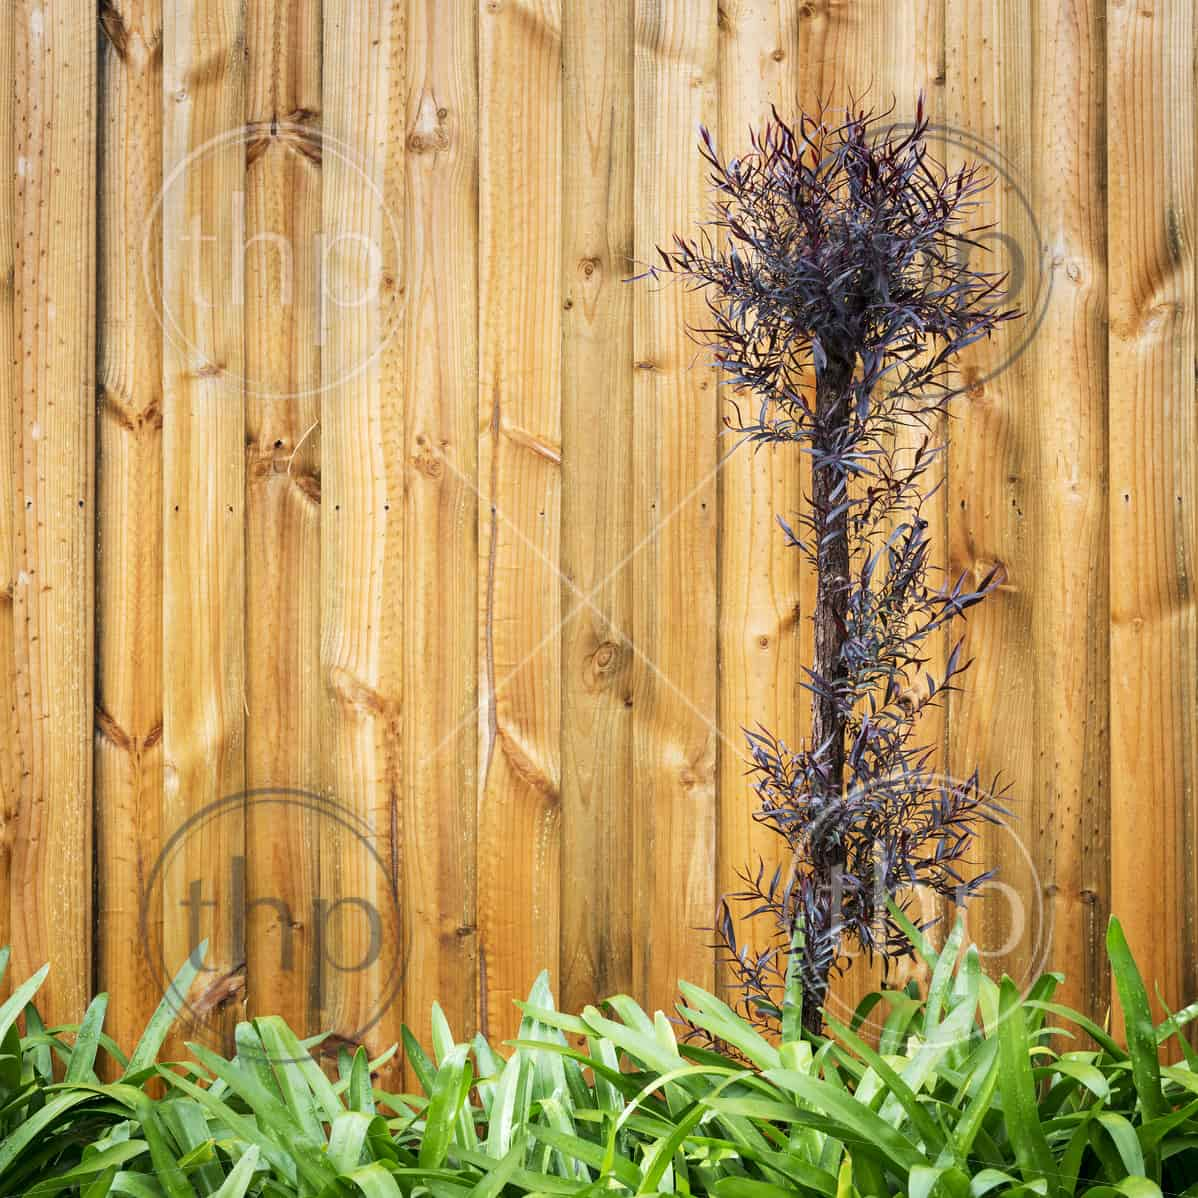 Landscape design background of multi coloured leaves and new wood panel fence